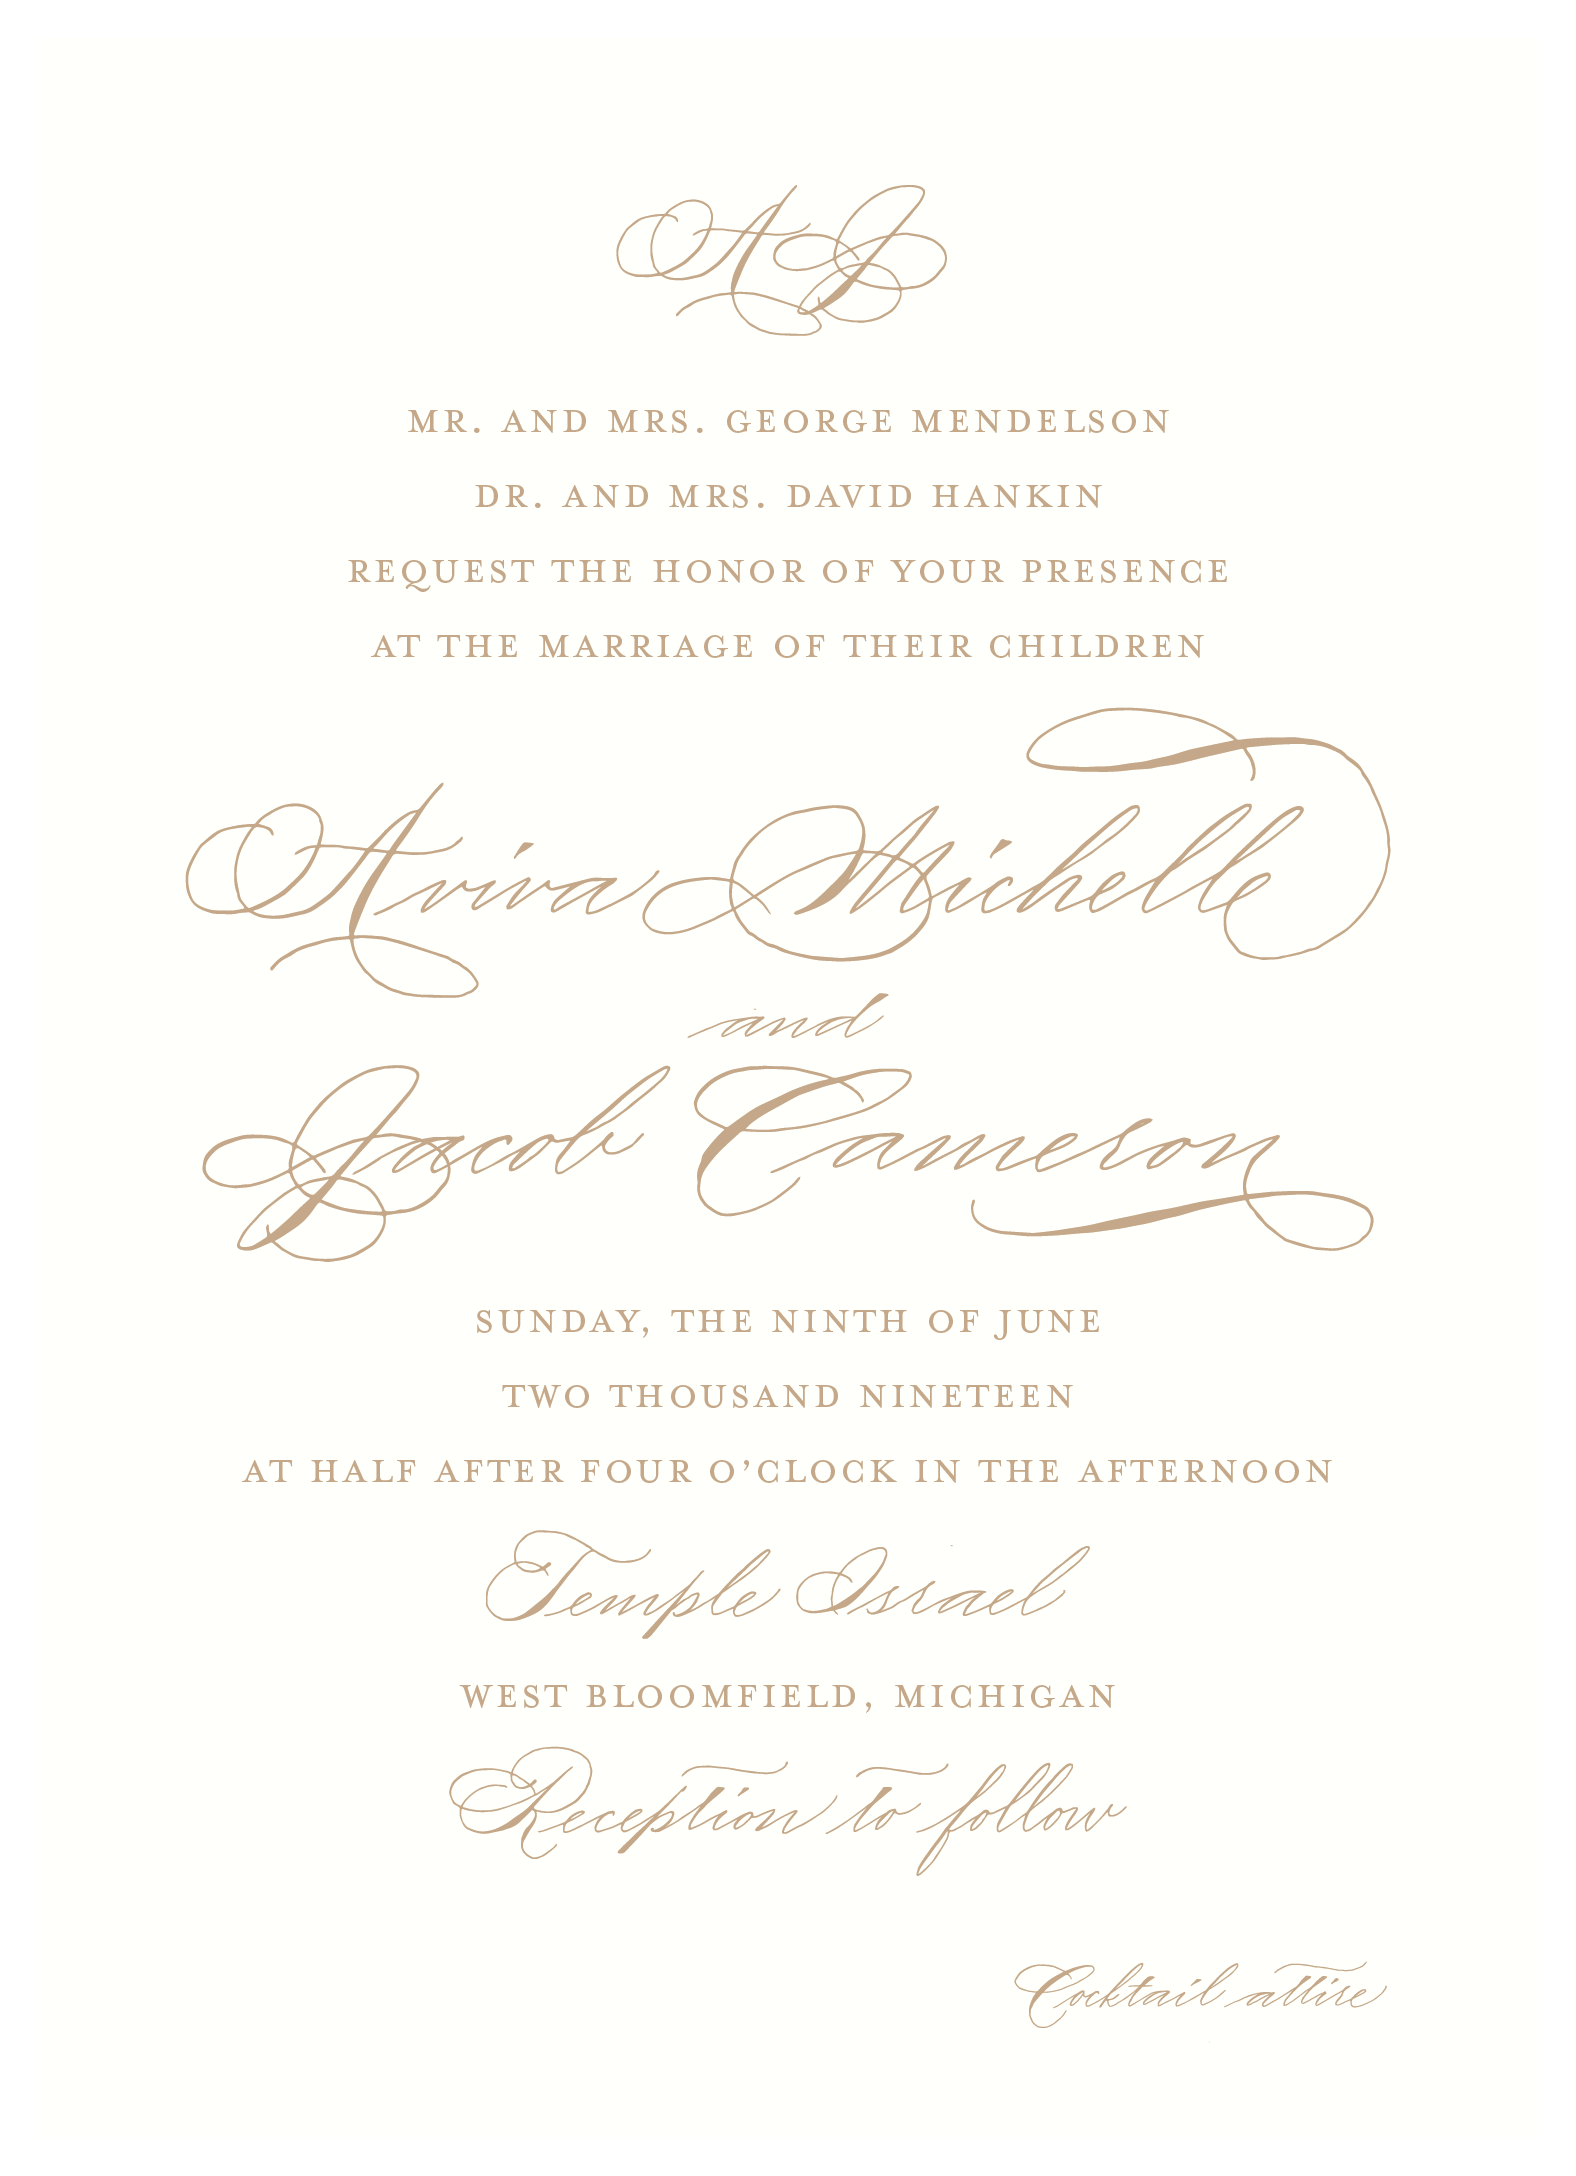 Tan wedding invitation with traditional monogram and calligraphy from Leah E. Moss Designs